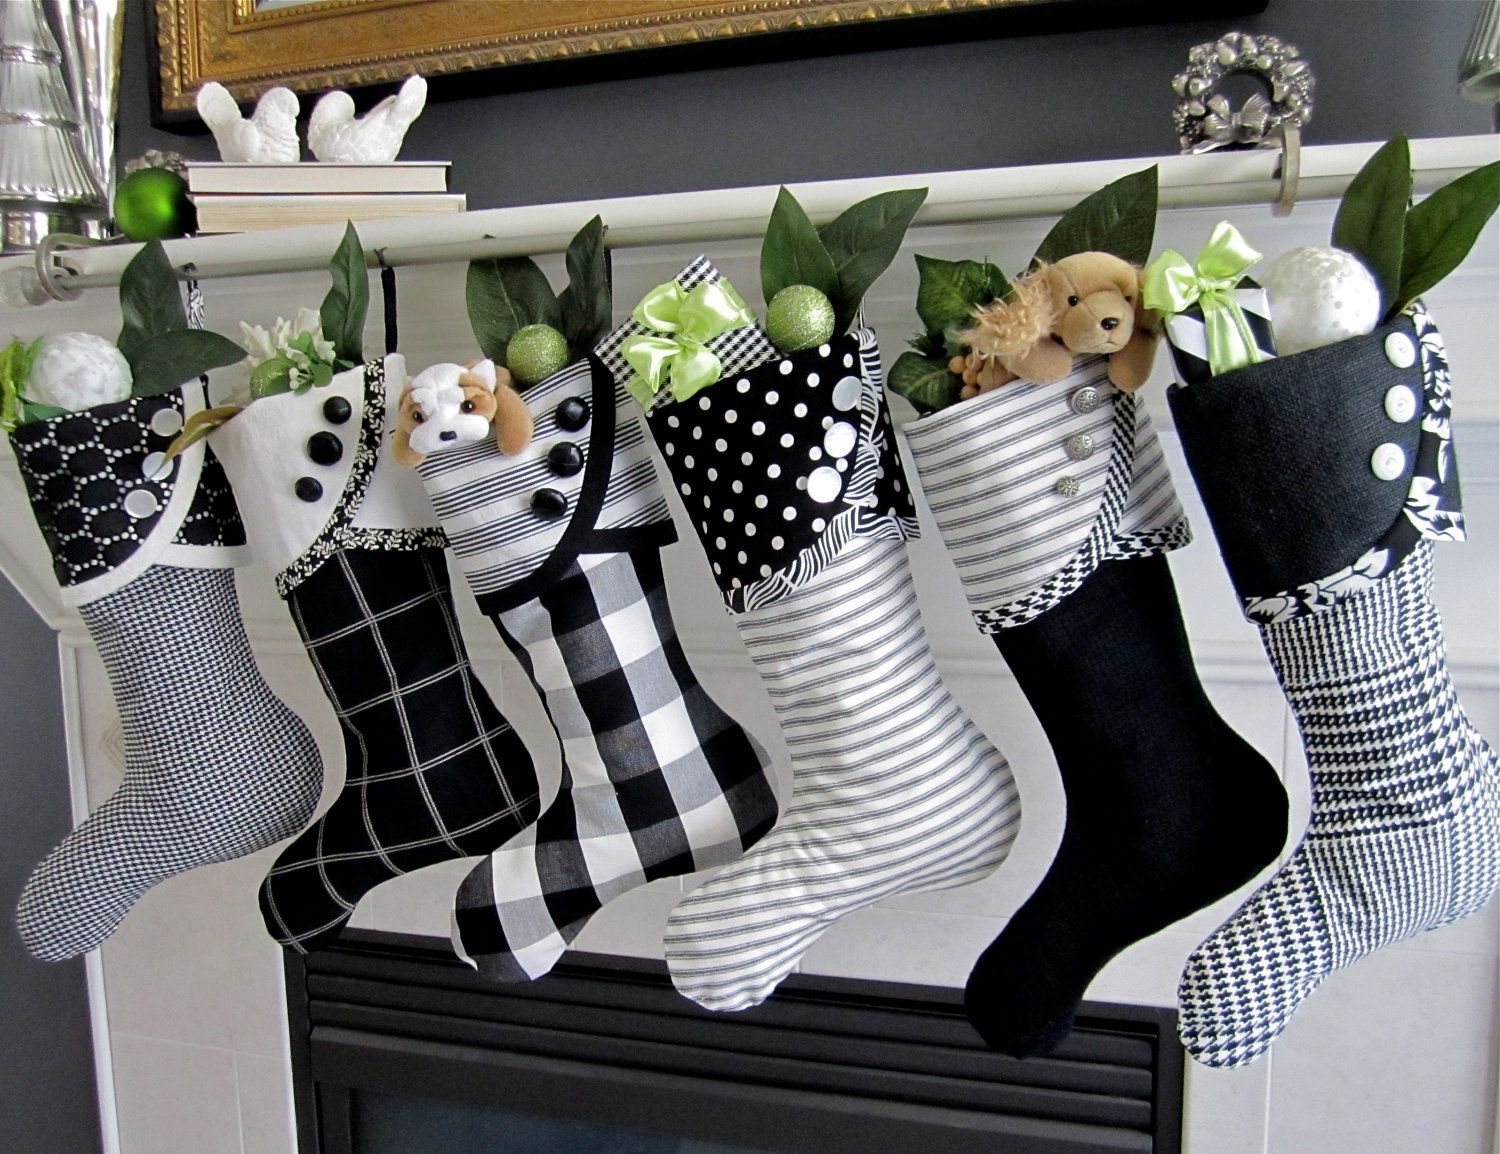 Black And White Christmas Stockings.No 2 Christmas Stocking Black White Graphic Droopy Toed